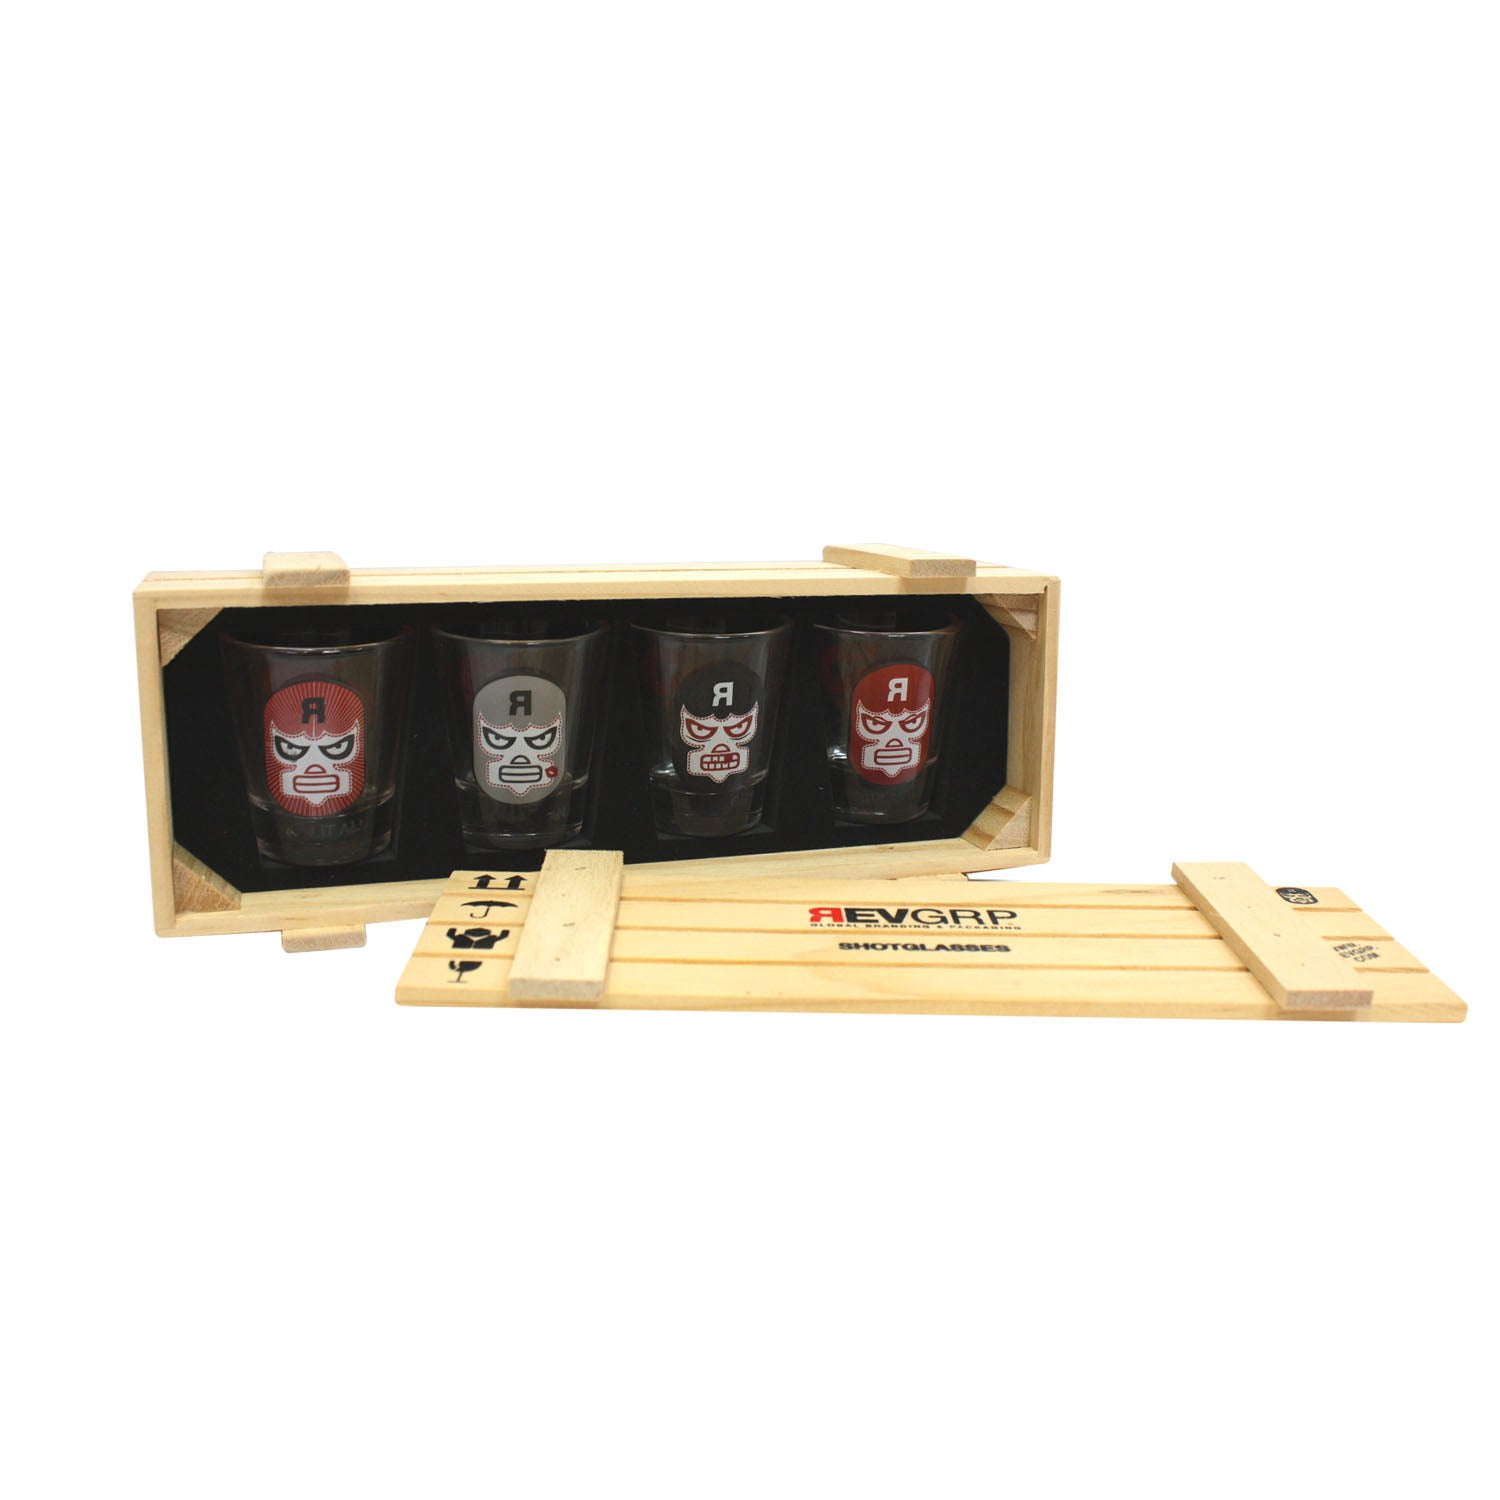 REVMAN Shot Glass Set